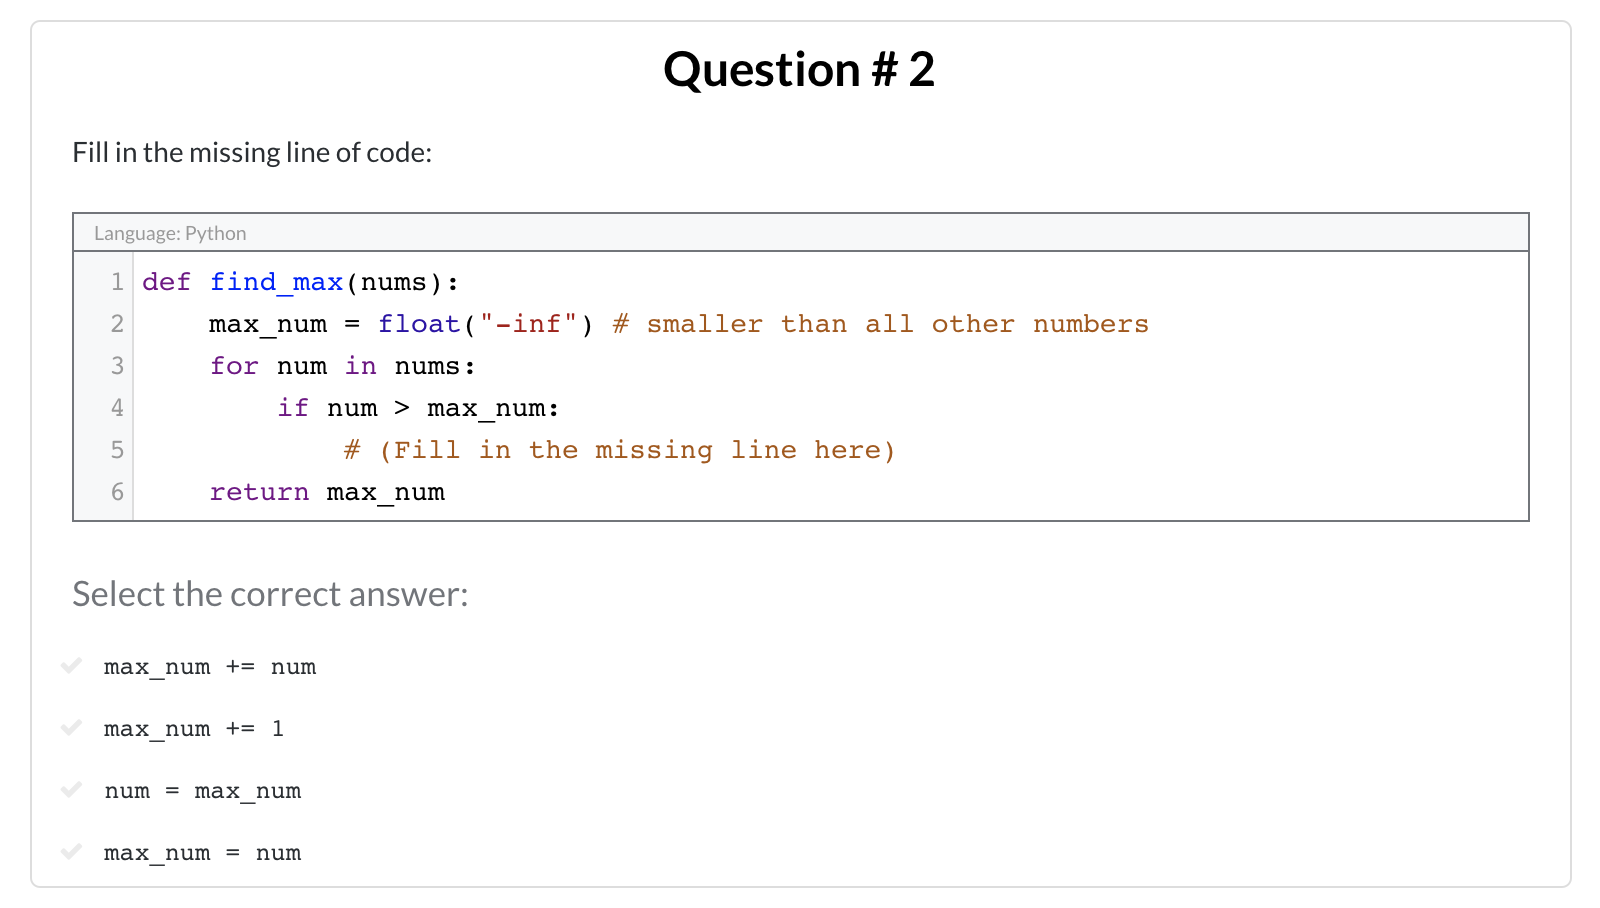 Question 2 of 5: Fill in the missing line of code